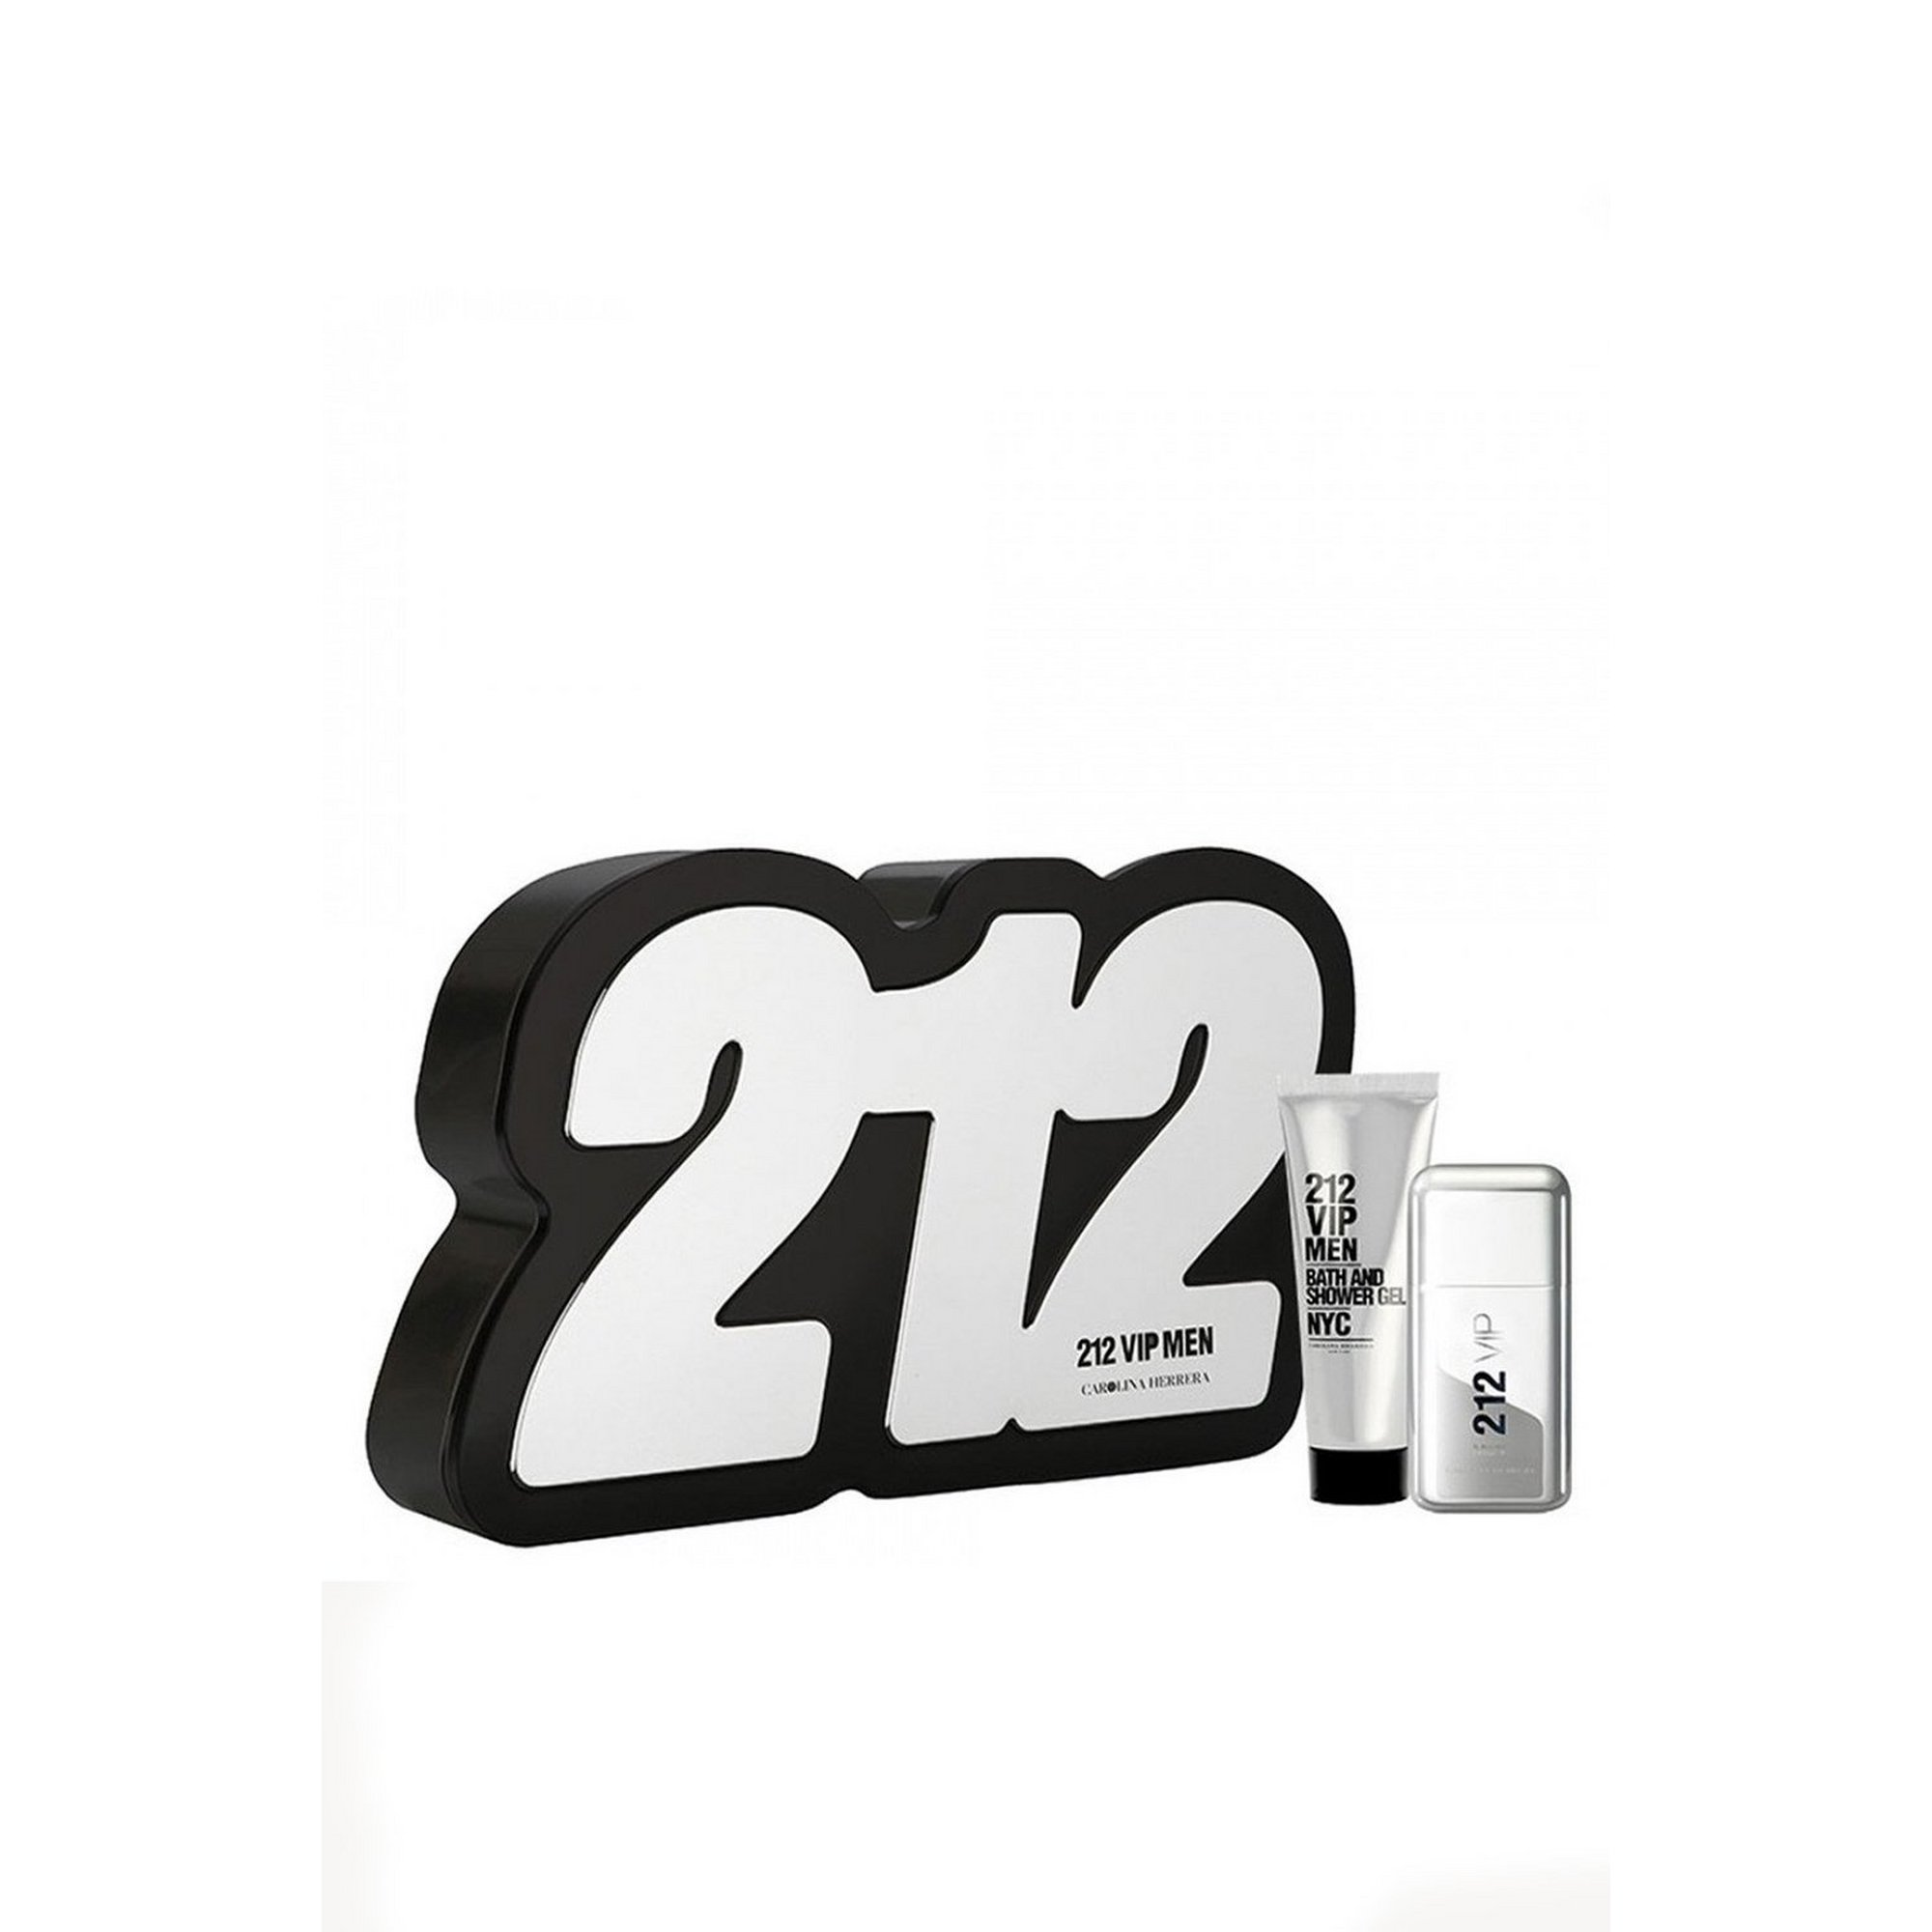 Image of Carolina Herrera 212 VIP Men 50ml EDT Gift Set